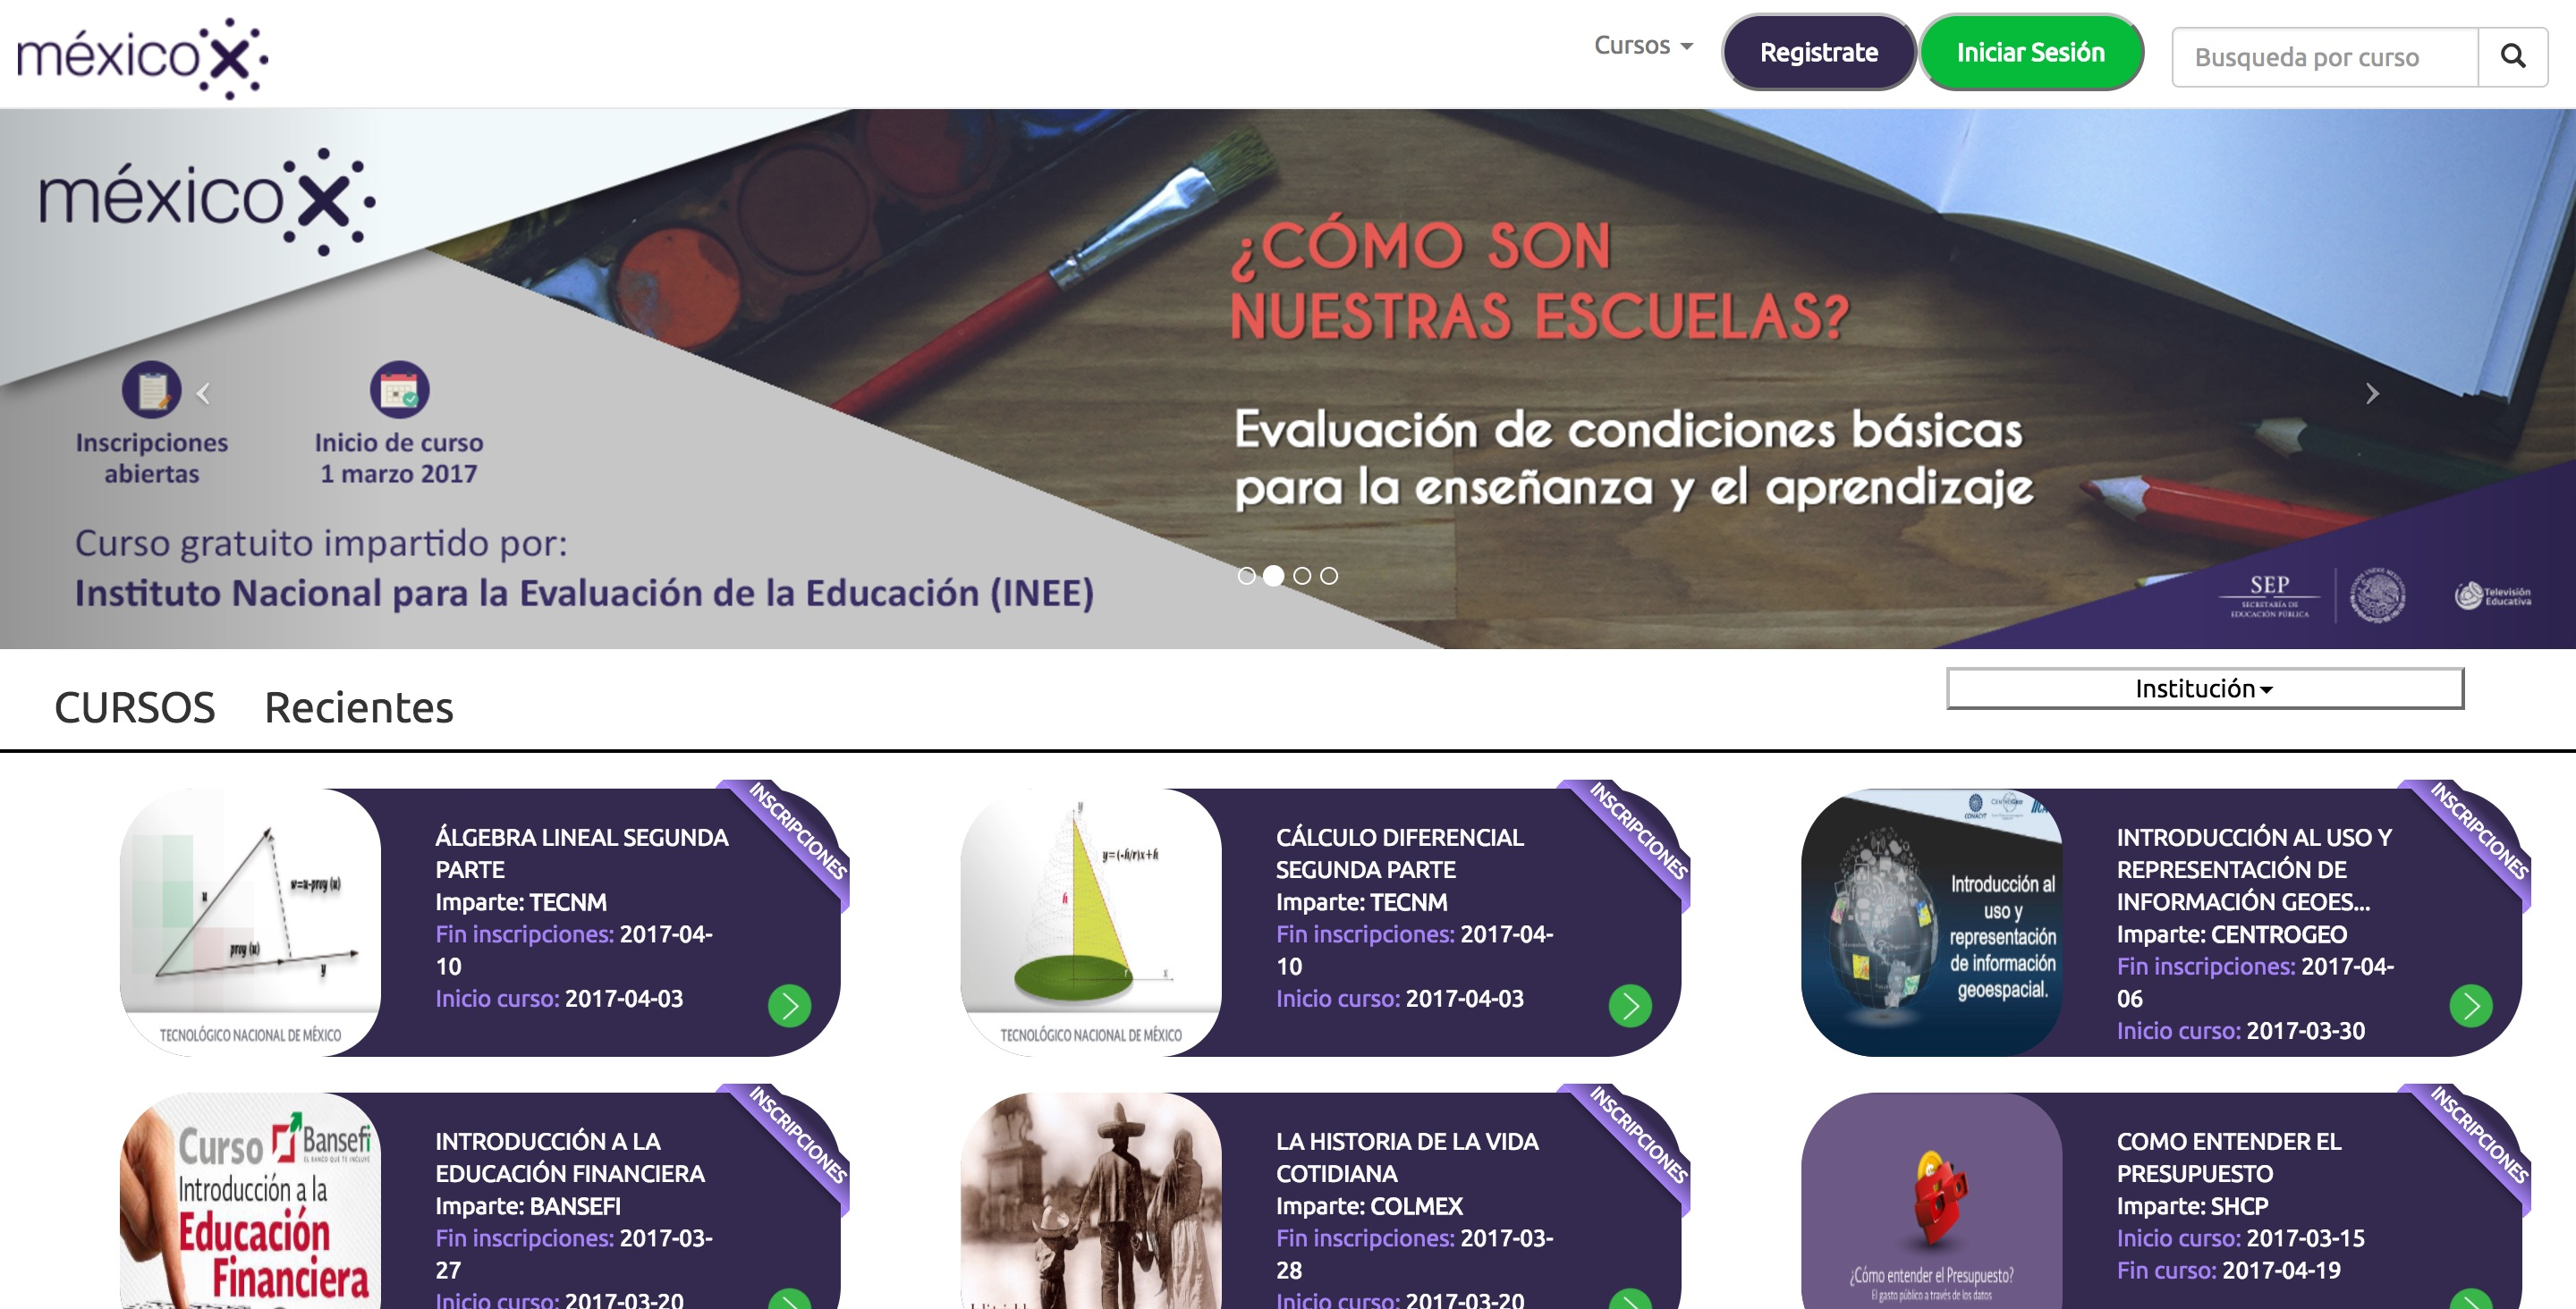 files/images/MexicoX-Homepage.jpg